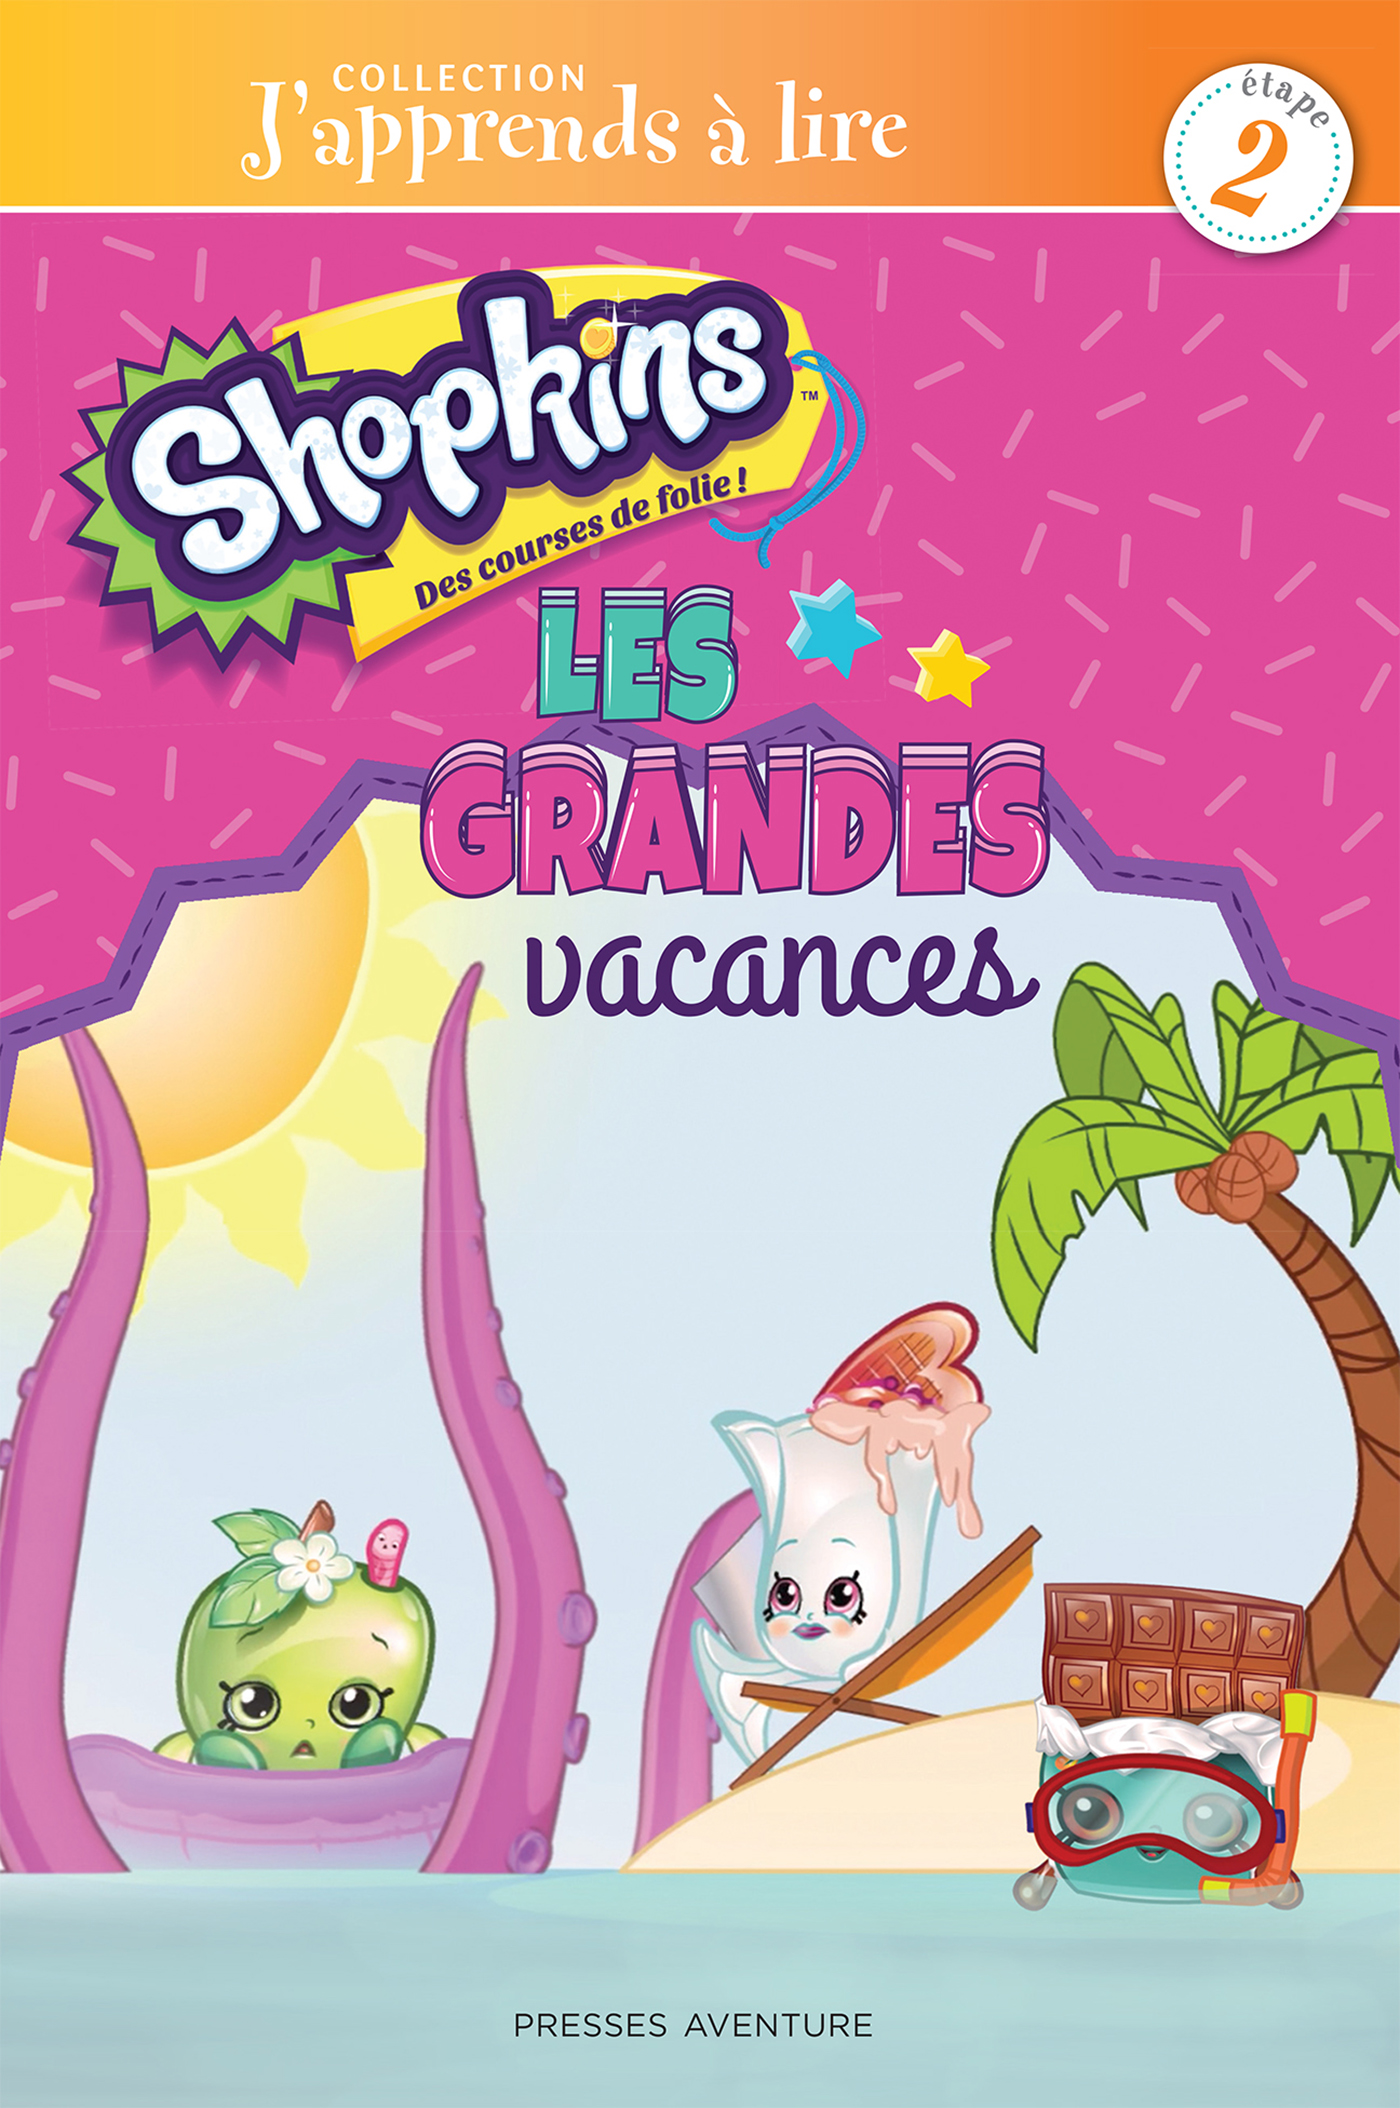 458_ShopkinsGrandesVacances_C1